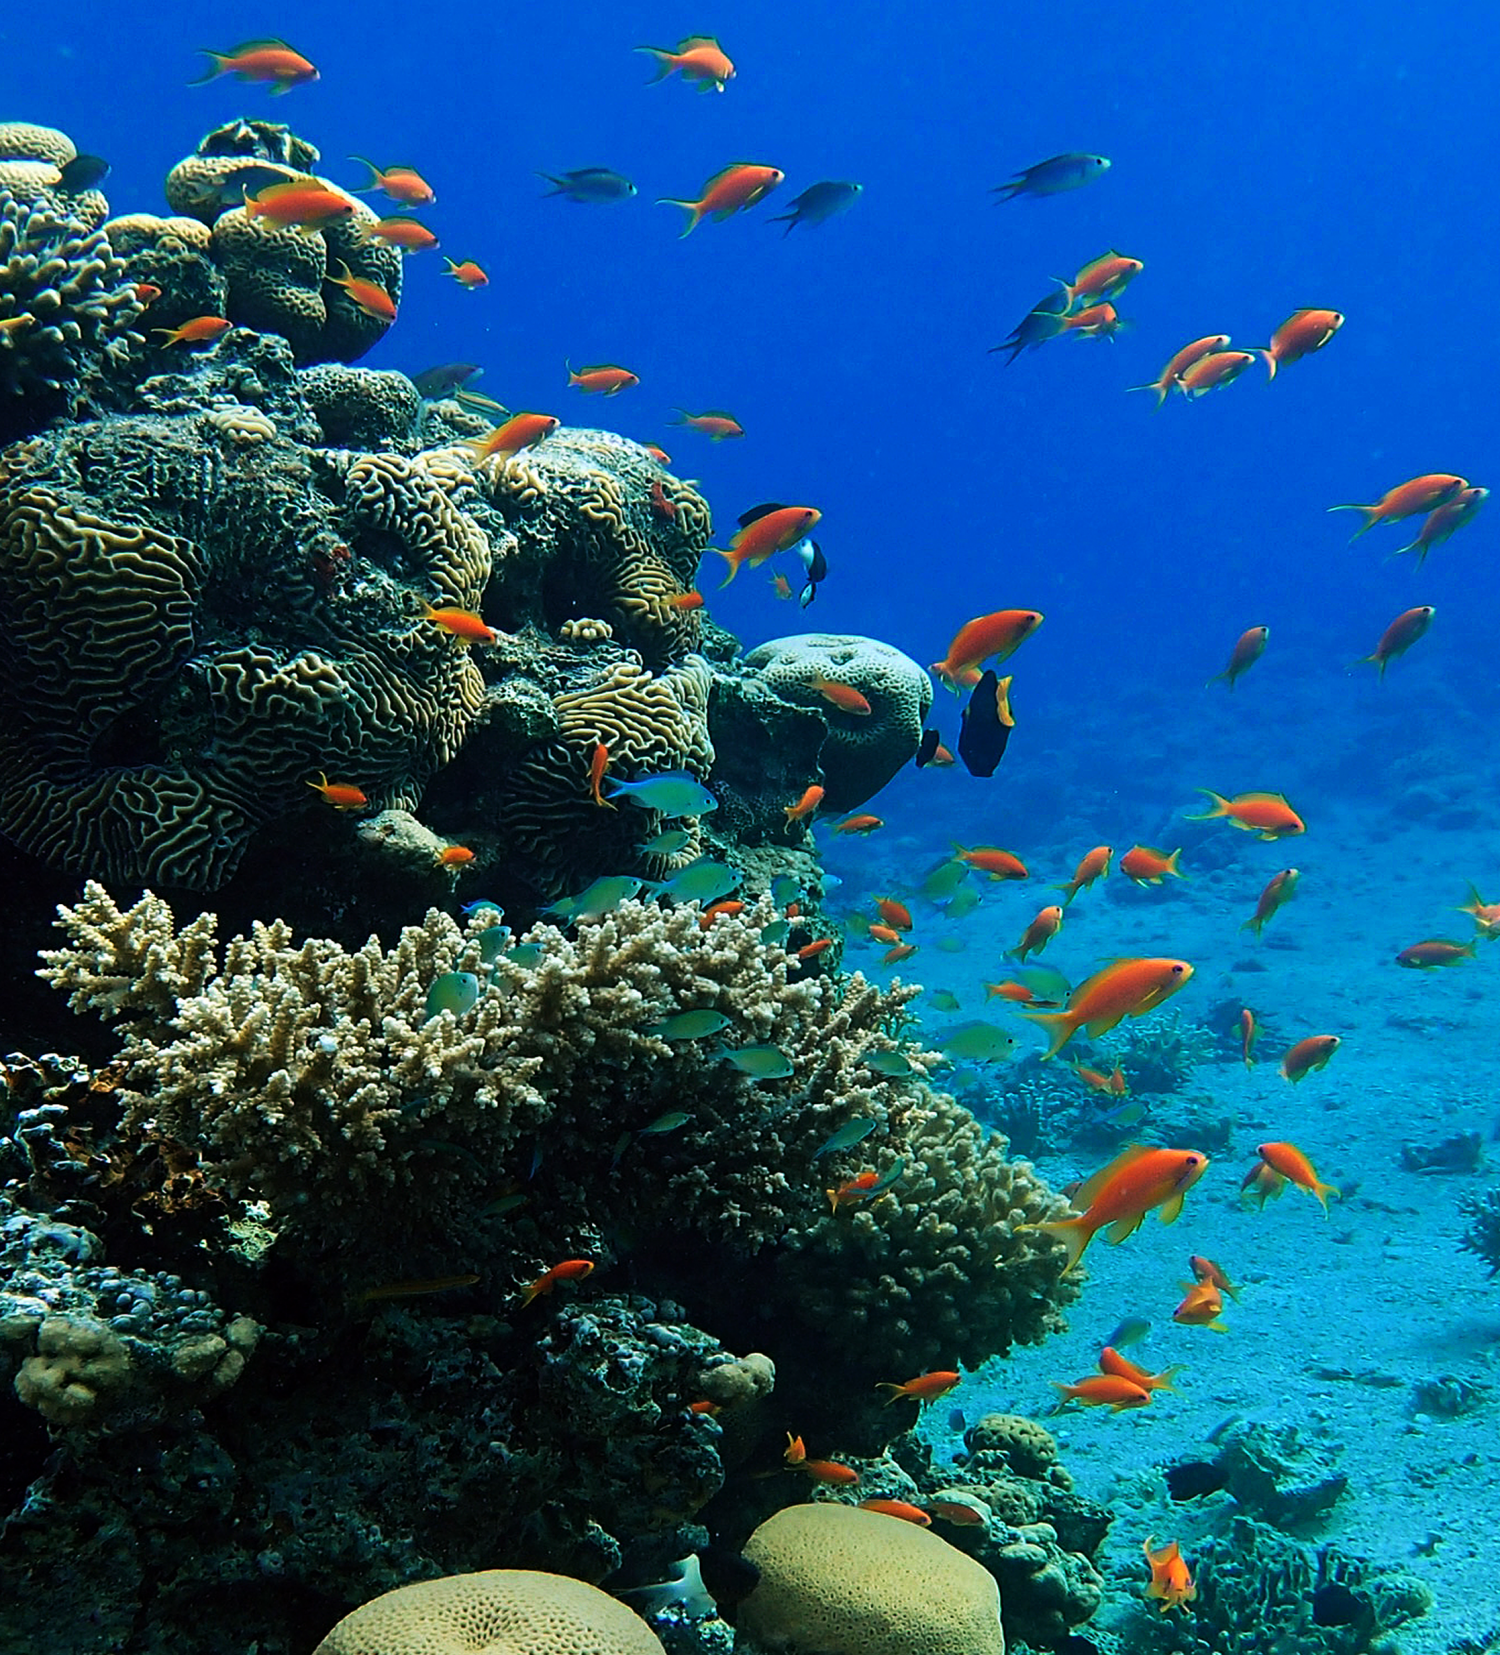 Coral Reefs Highlight The Key Role Of Existing